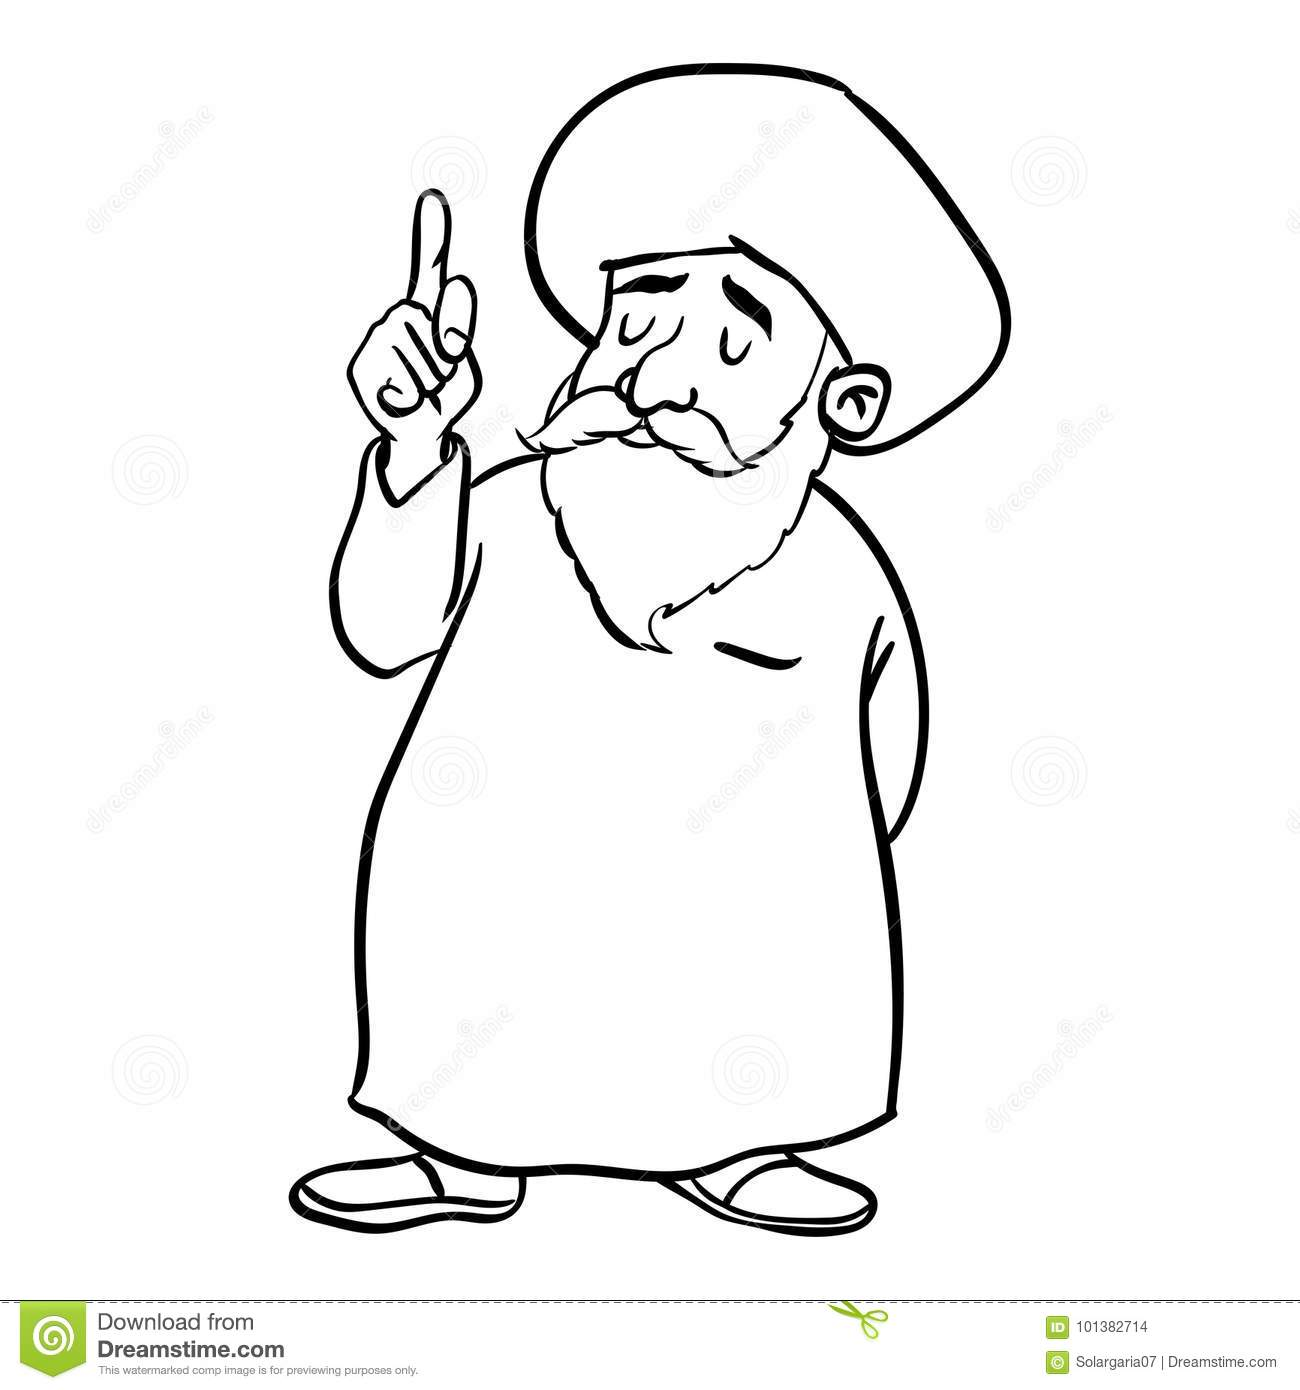 Hand Drawing Of Cartoon Muslim Old Man Standing Pointer Finger Up Isolated On White Background Black And Simple Line Vector Illustration For